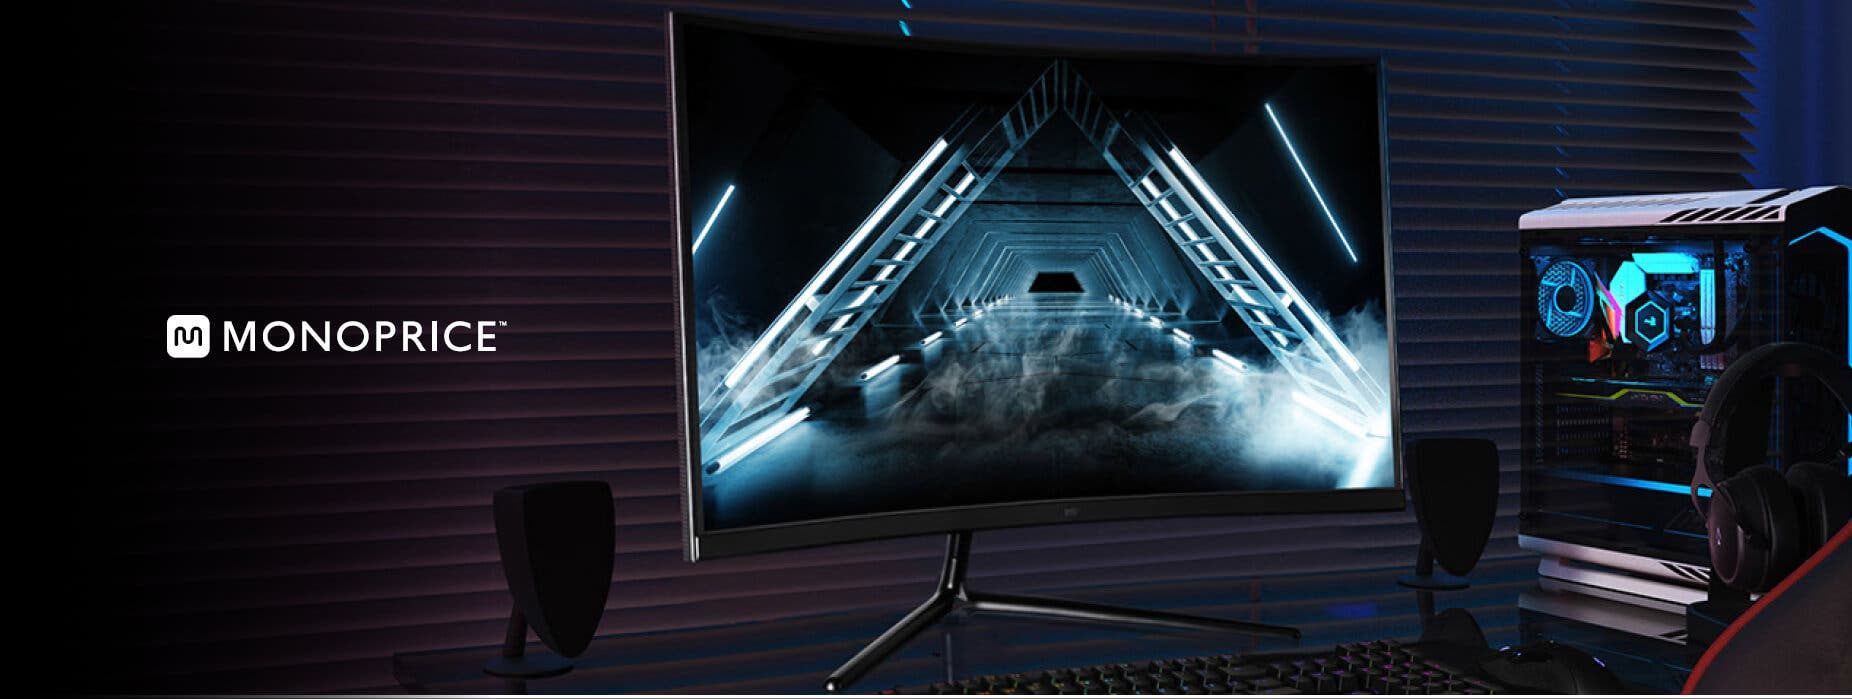 Monoprice Zero-G 27 inch Curved Gaming Monitor with 1500R curvature, 144Hz, refresh rate, and HDR support.